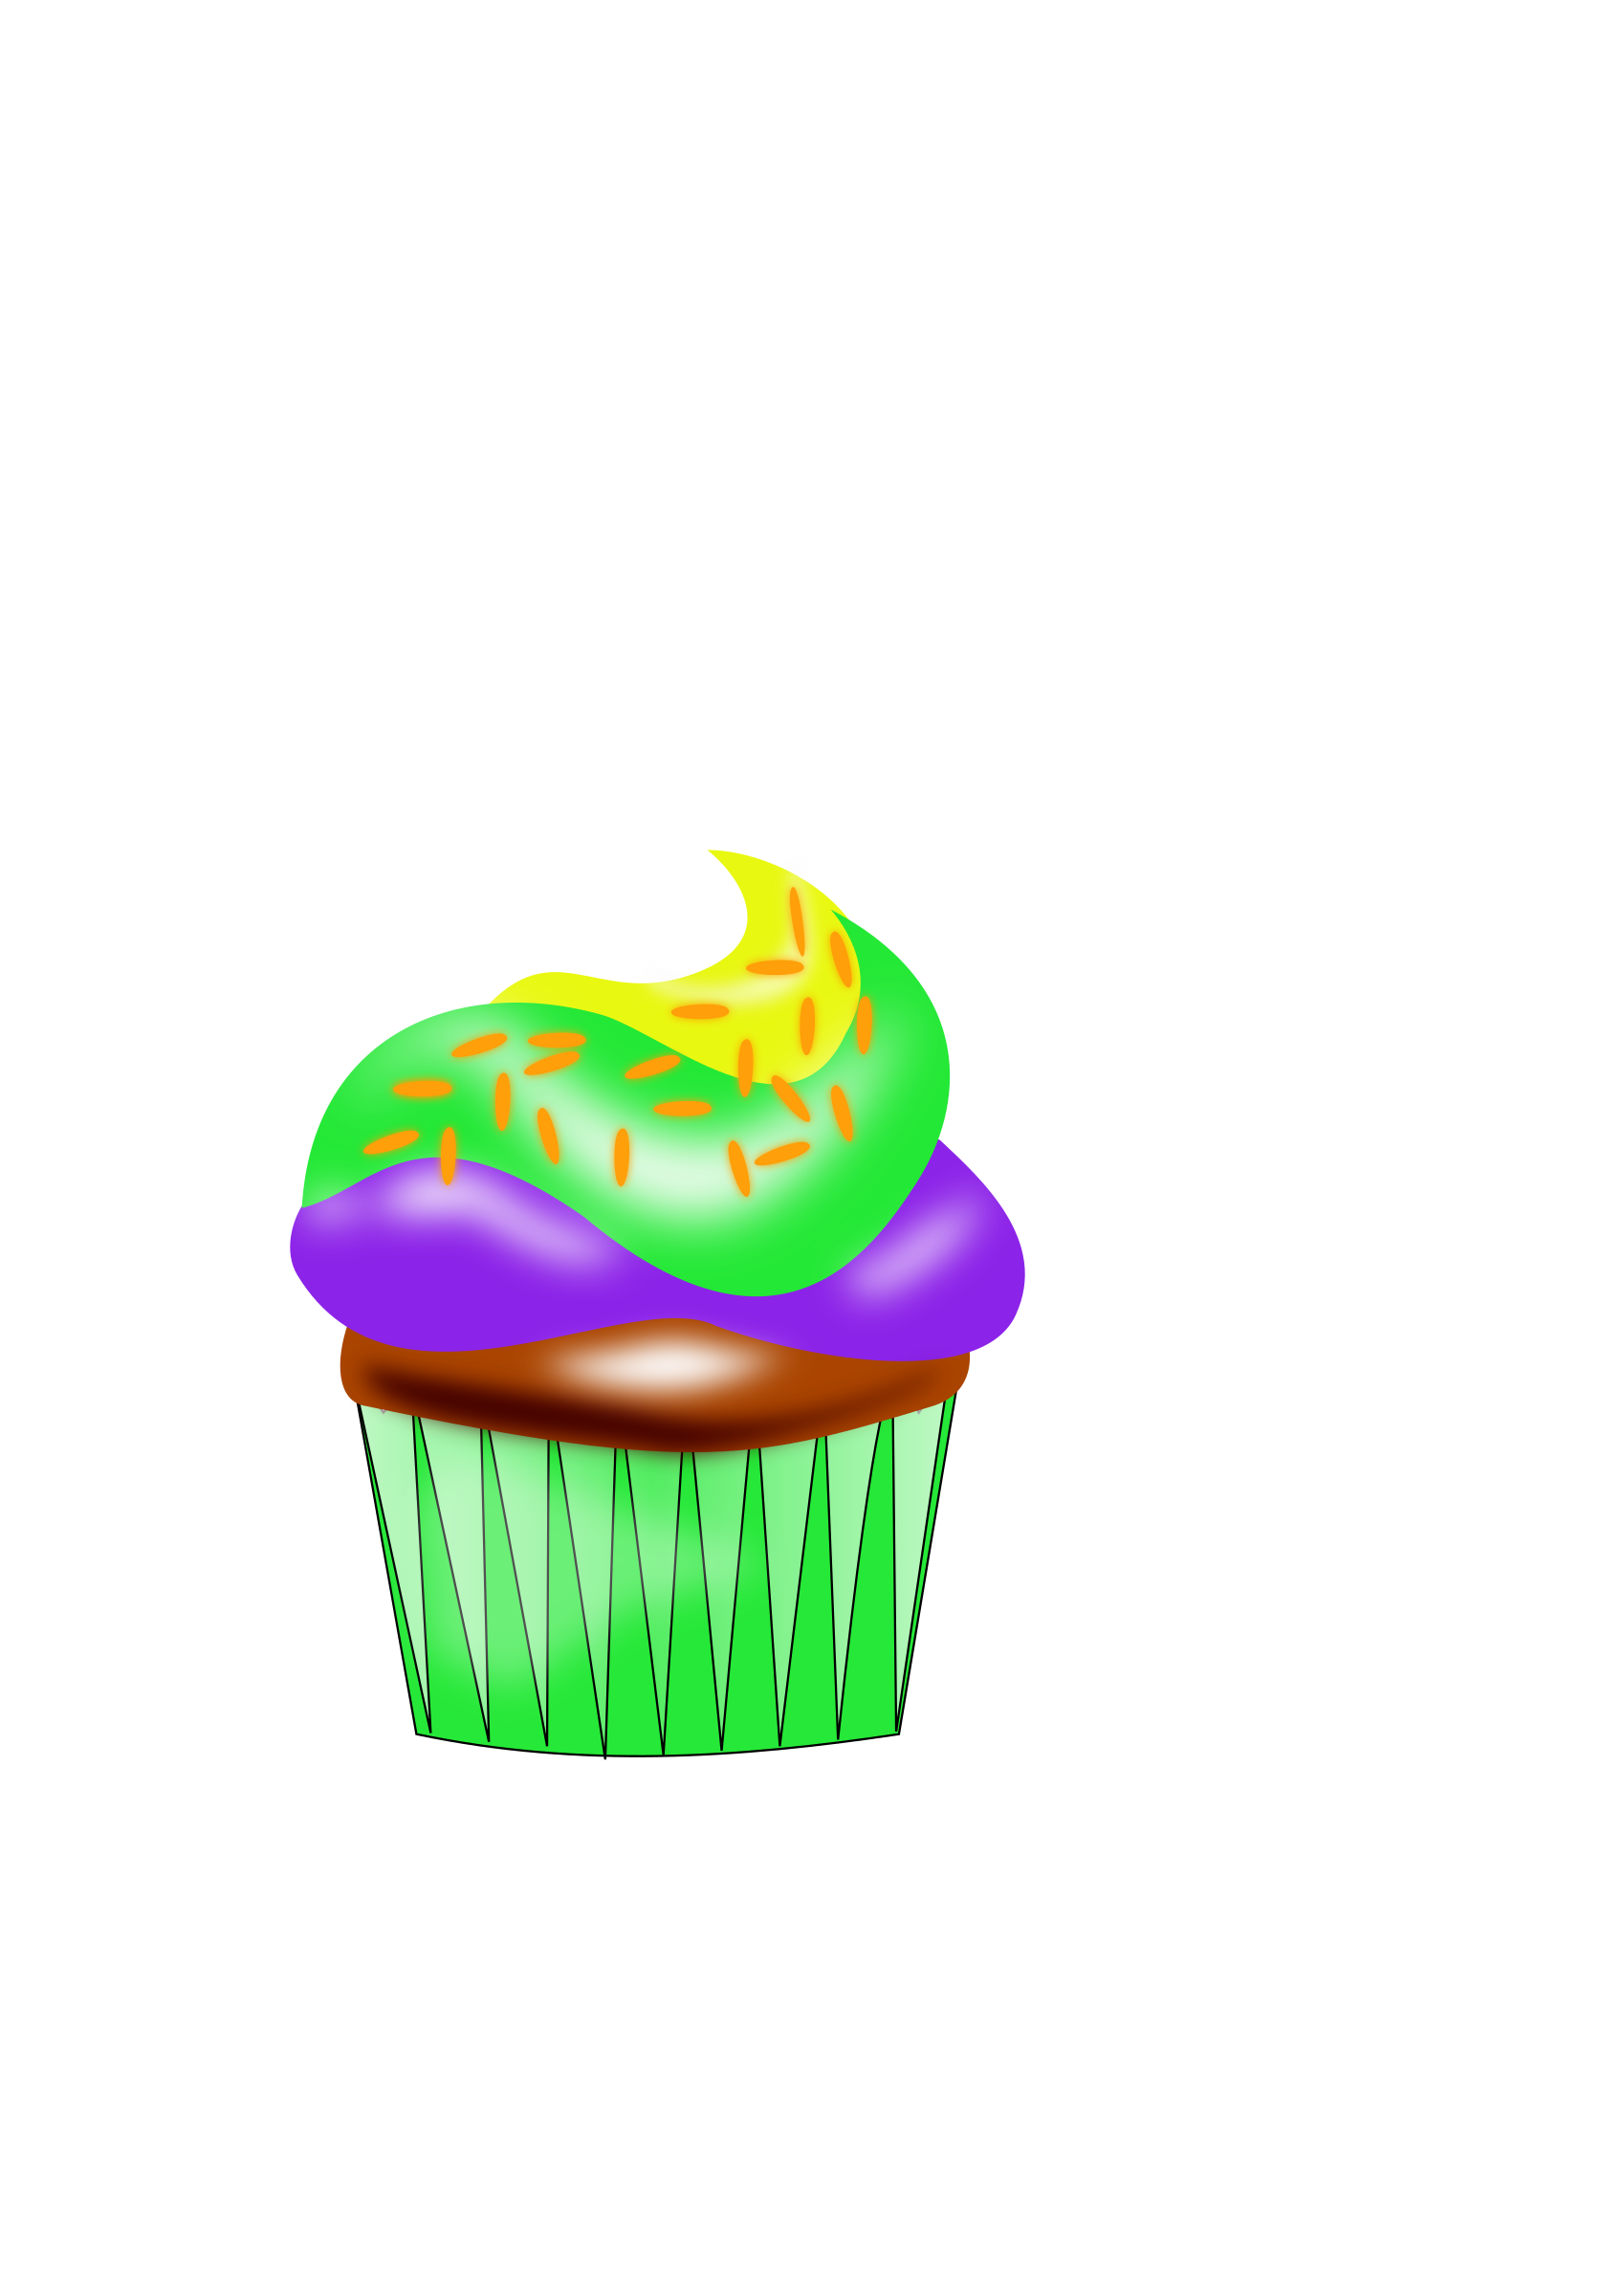 Cupcake by aburgan